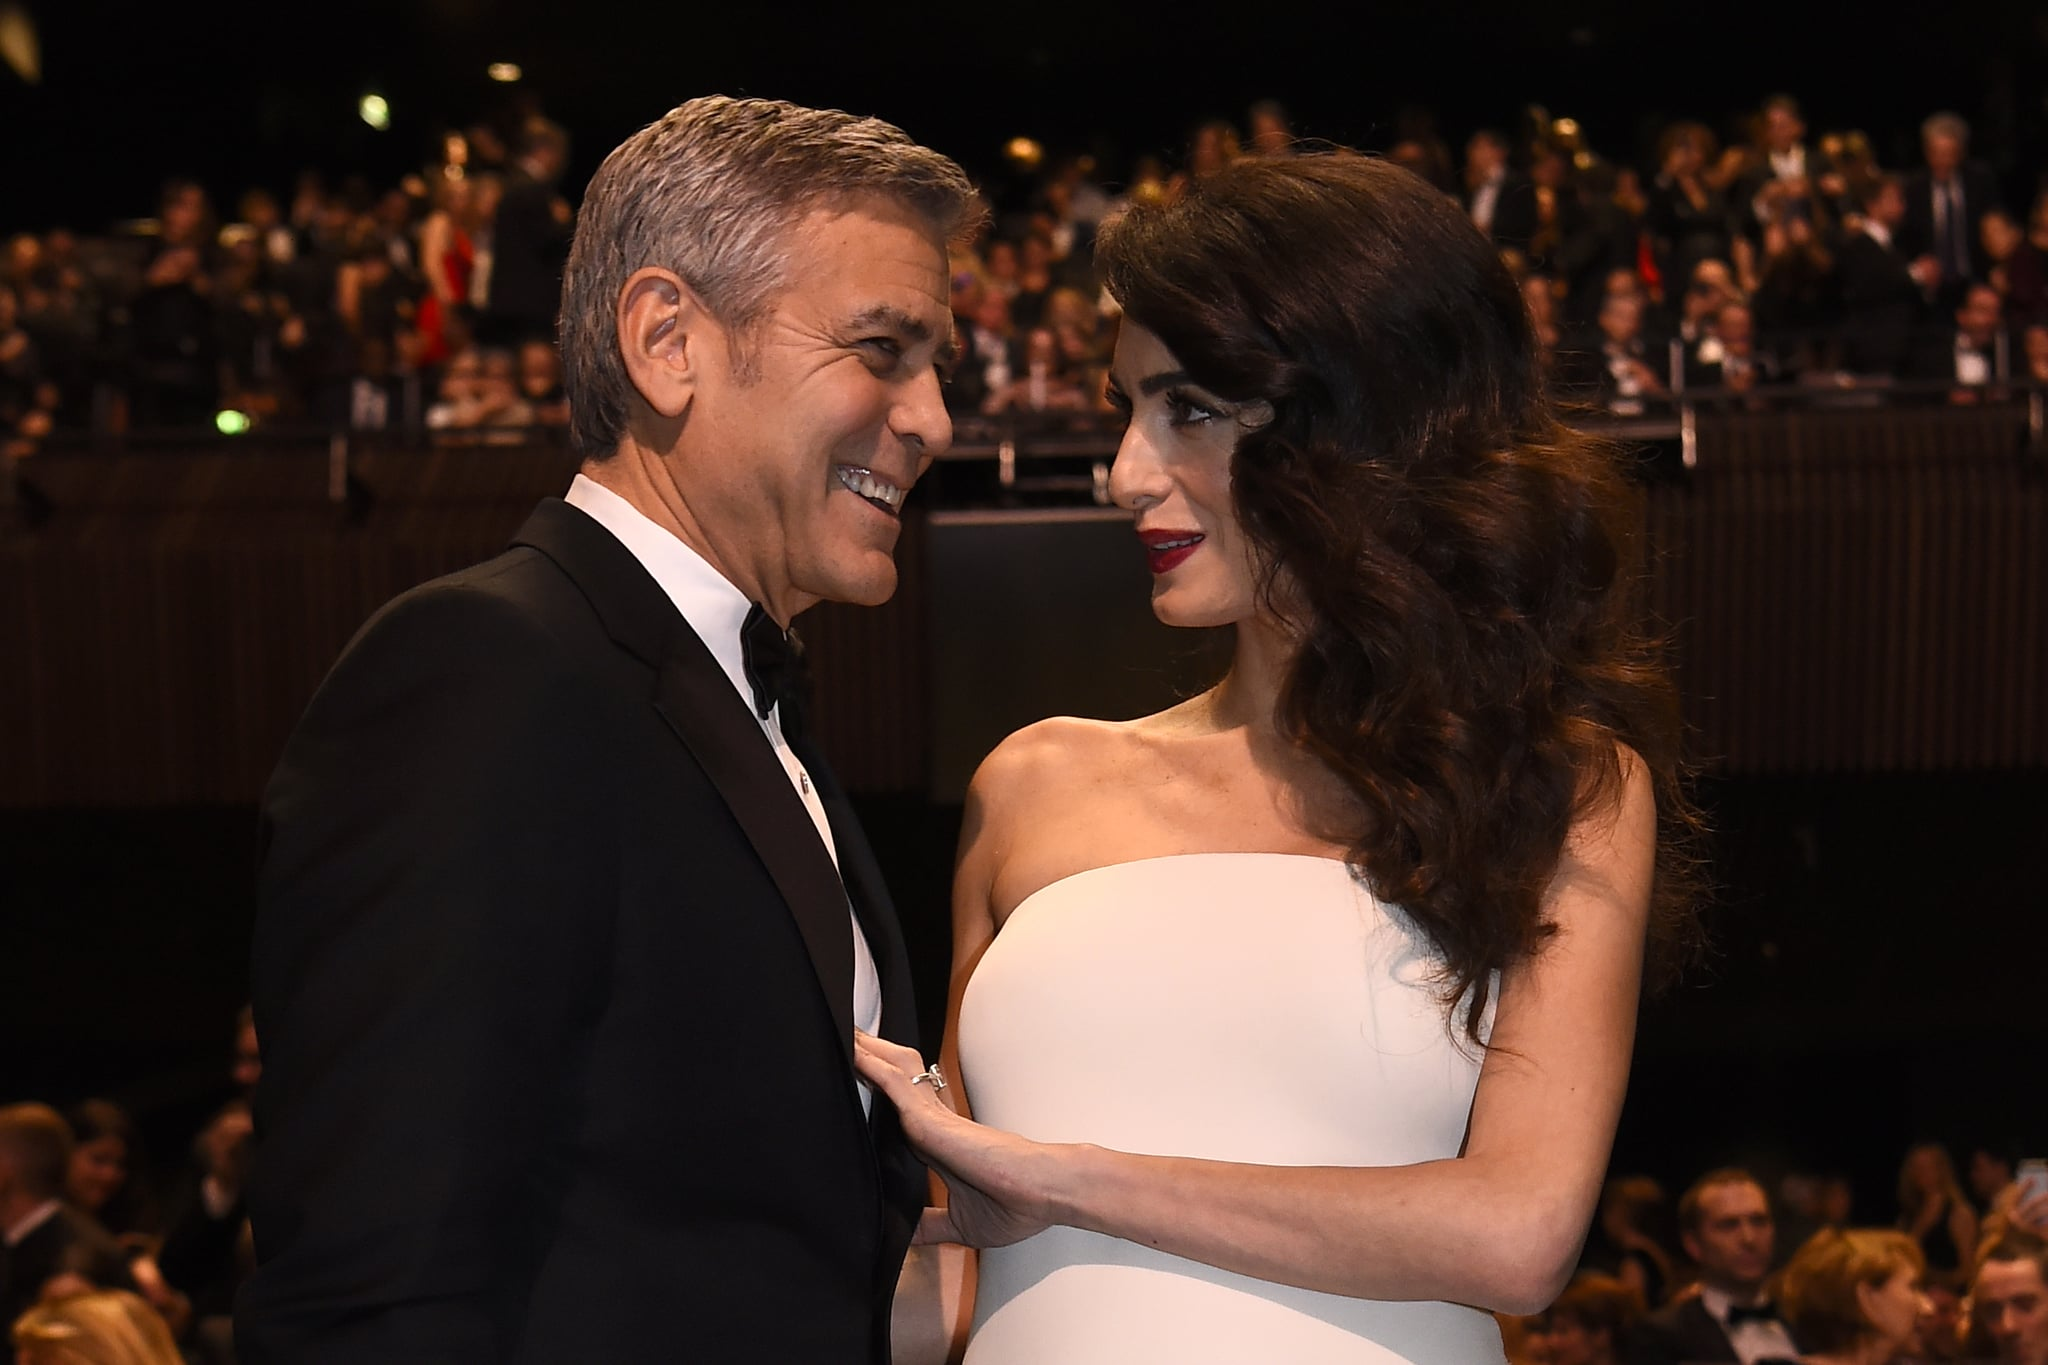 George Clooney and his darling officially sealed their relationship 09/29/2014 2